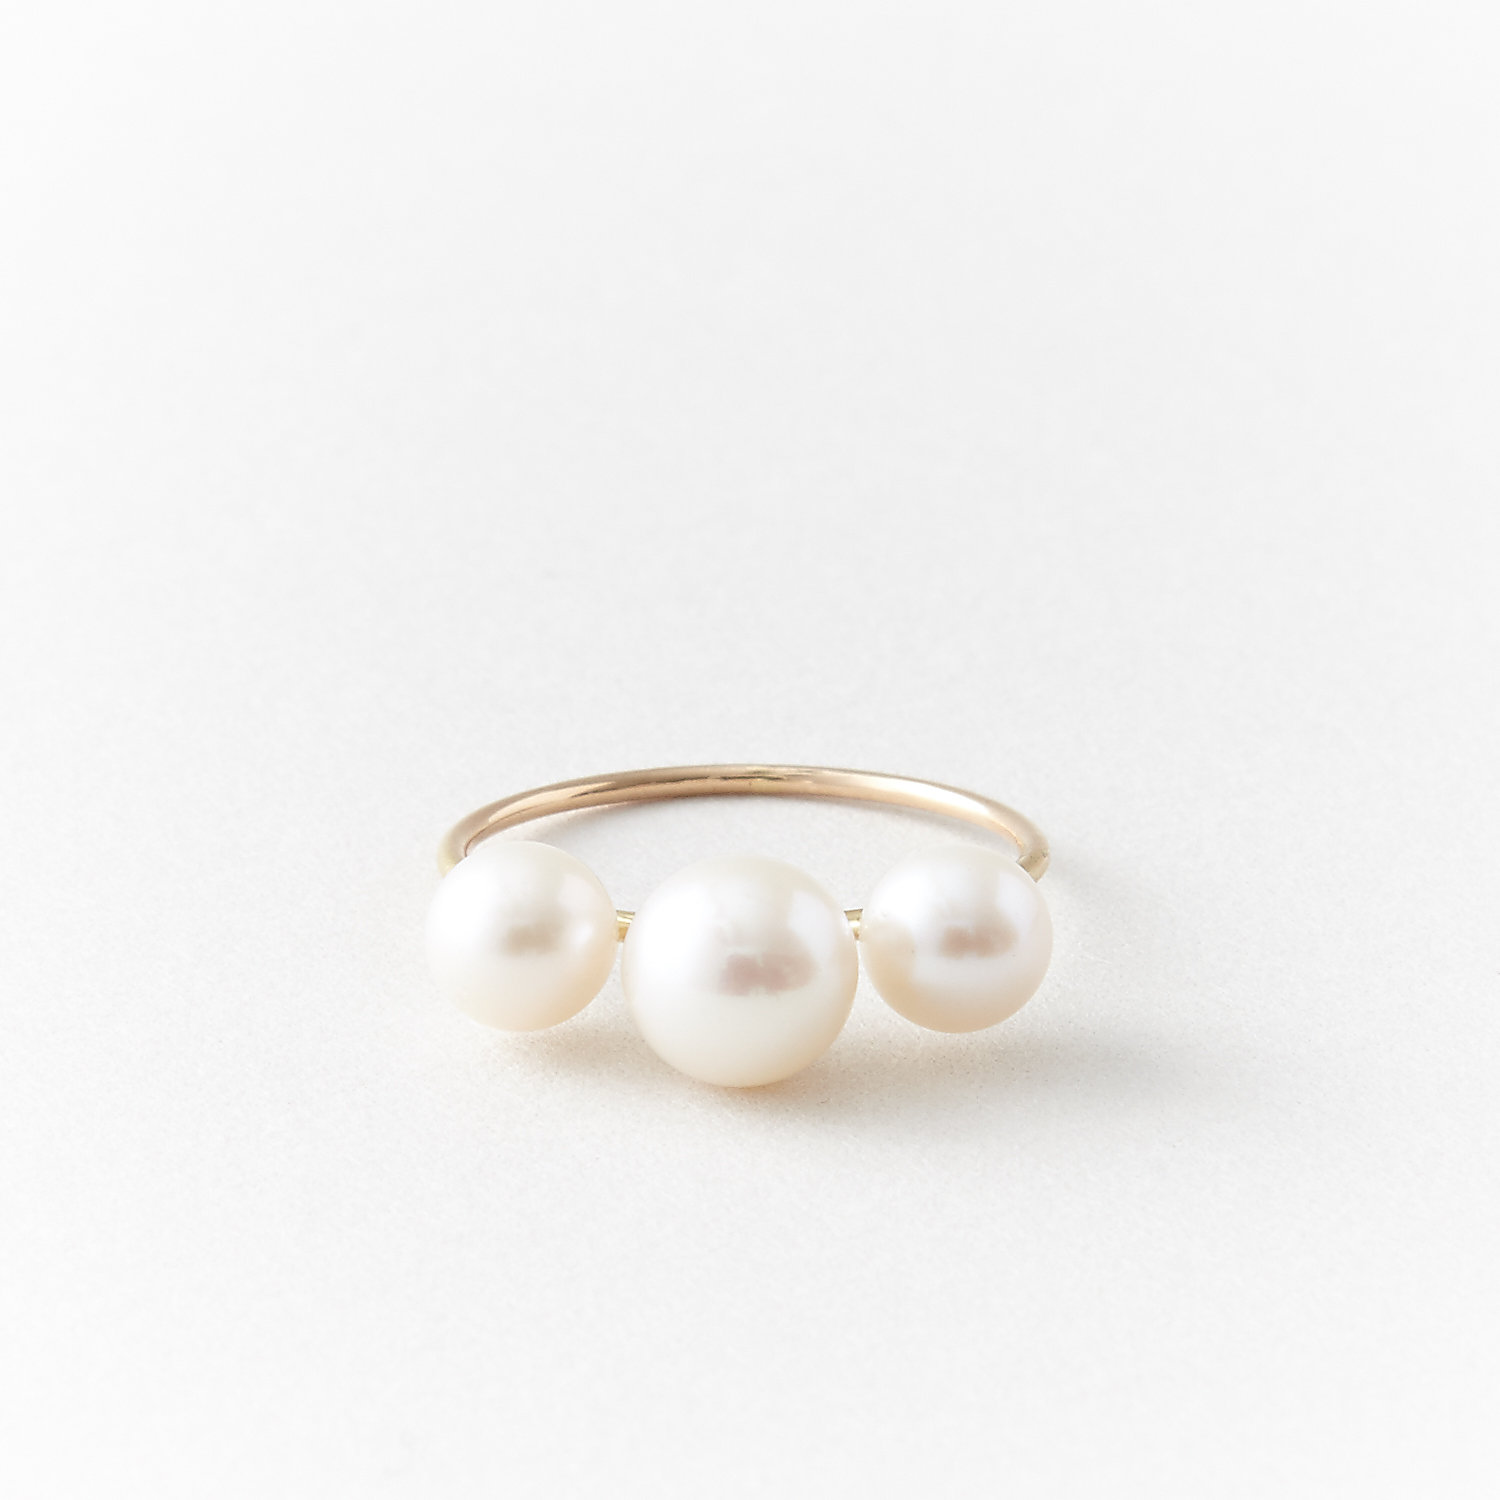 PEARLS RING 3 750 AU FRESHWATER